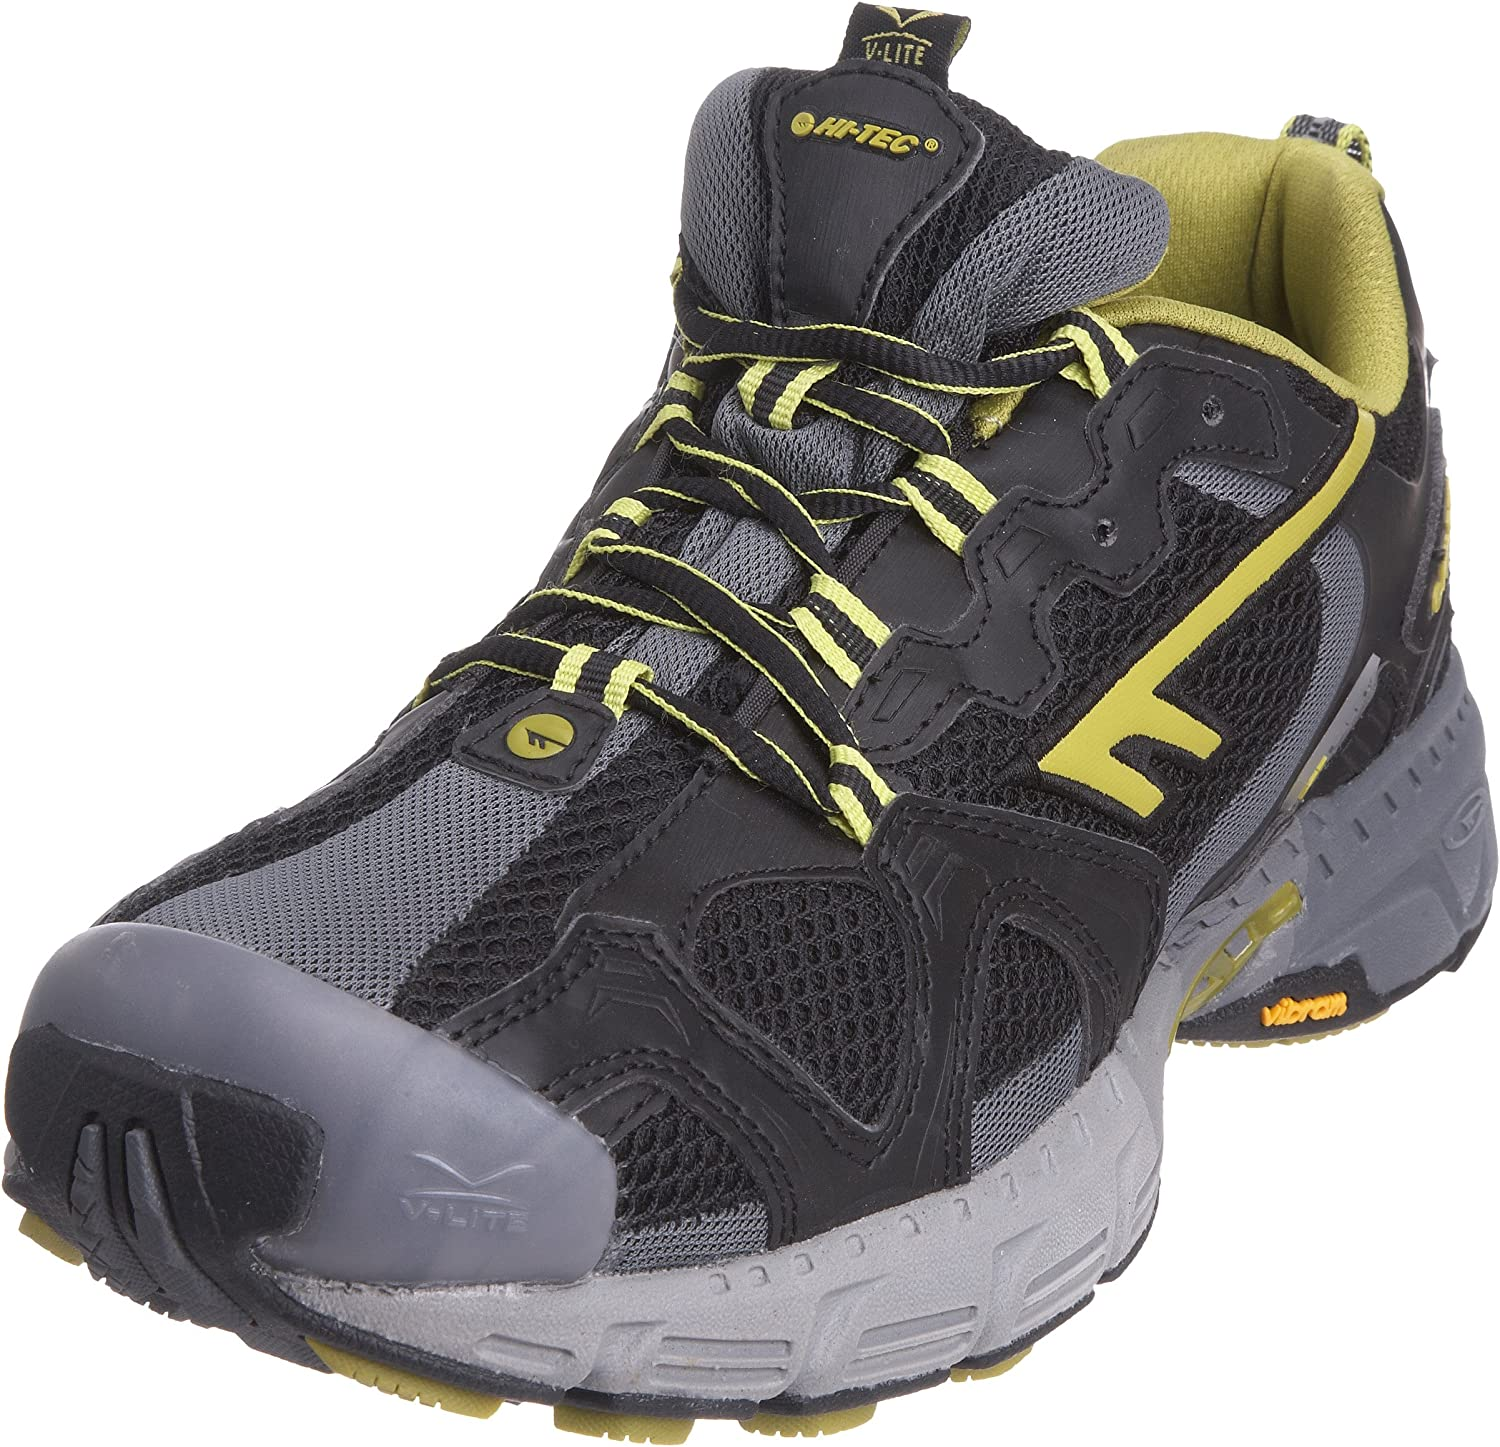 Hi-Tec Men's V-Lite Trail Eruption Hpi Trainer